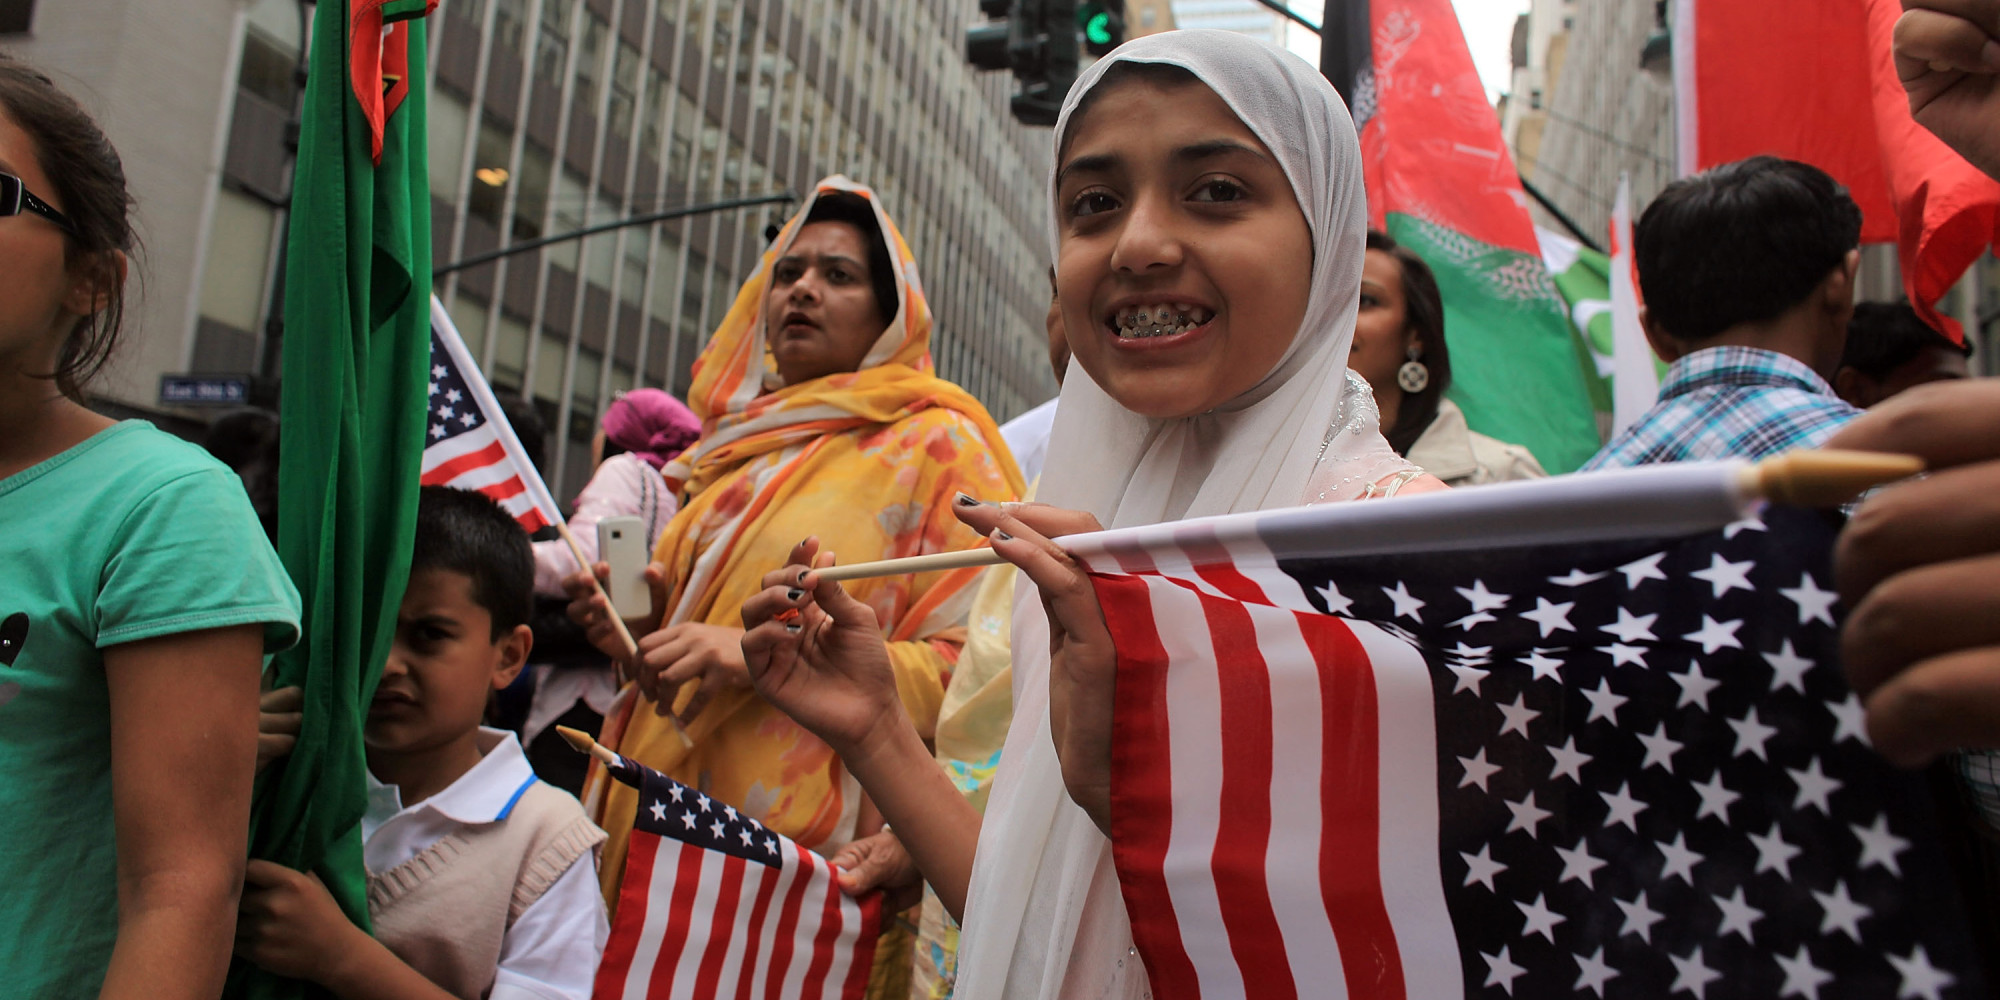 Muslim-American Demographics Reveal A Diverse Group That